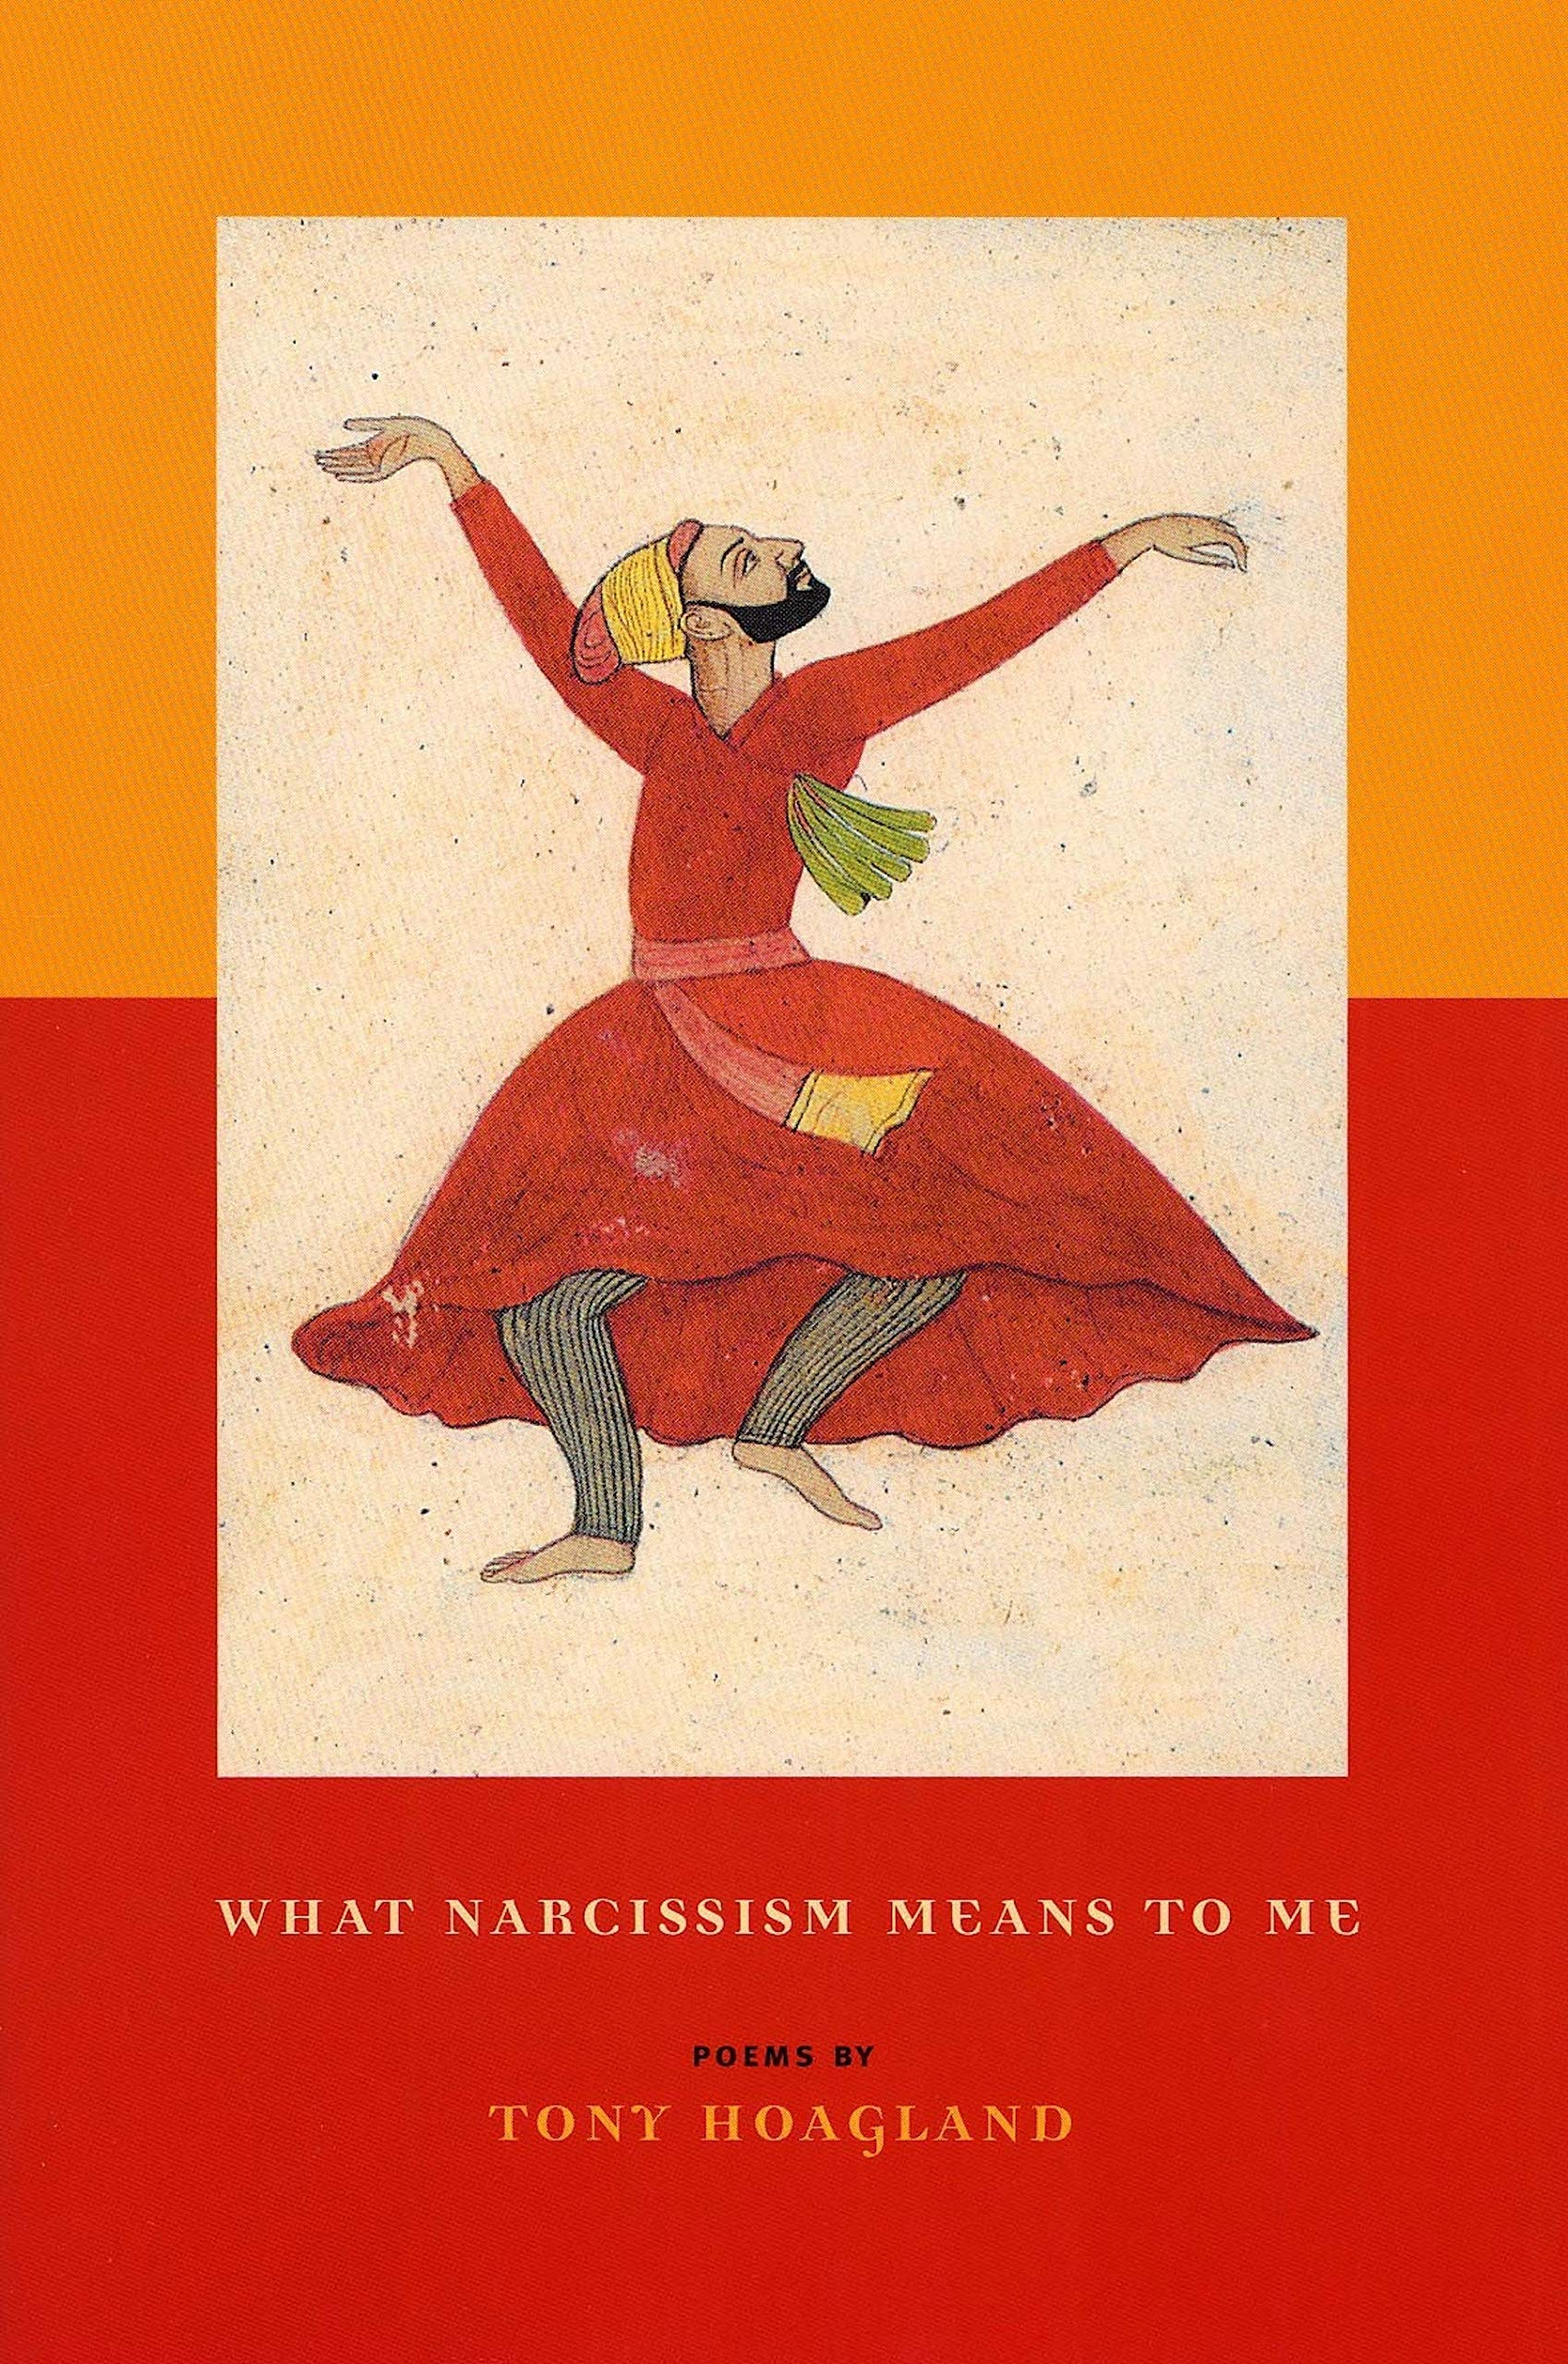 What Narcissism Means to Me by Tony Hoagland